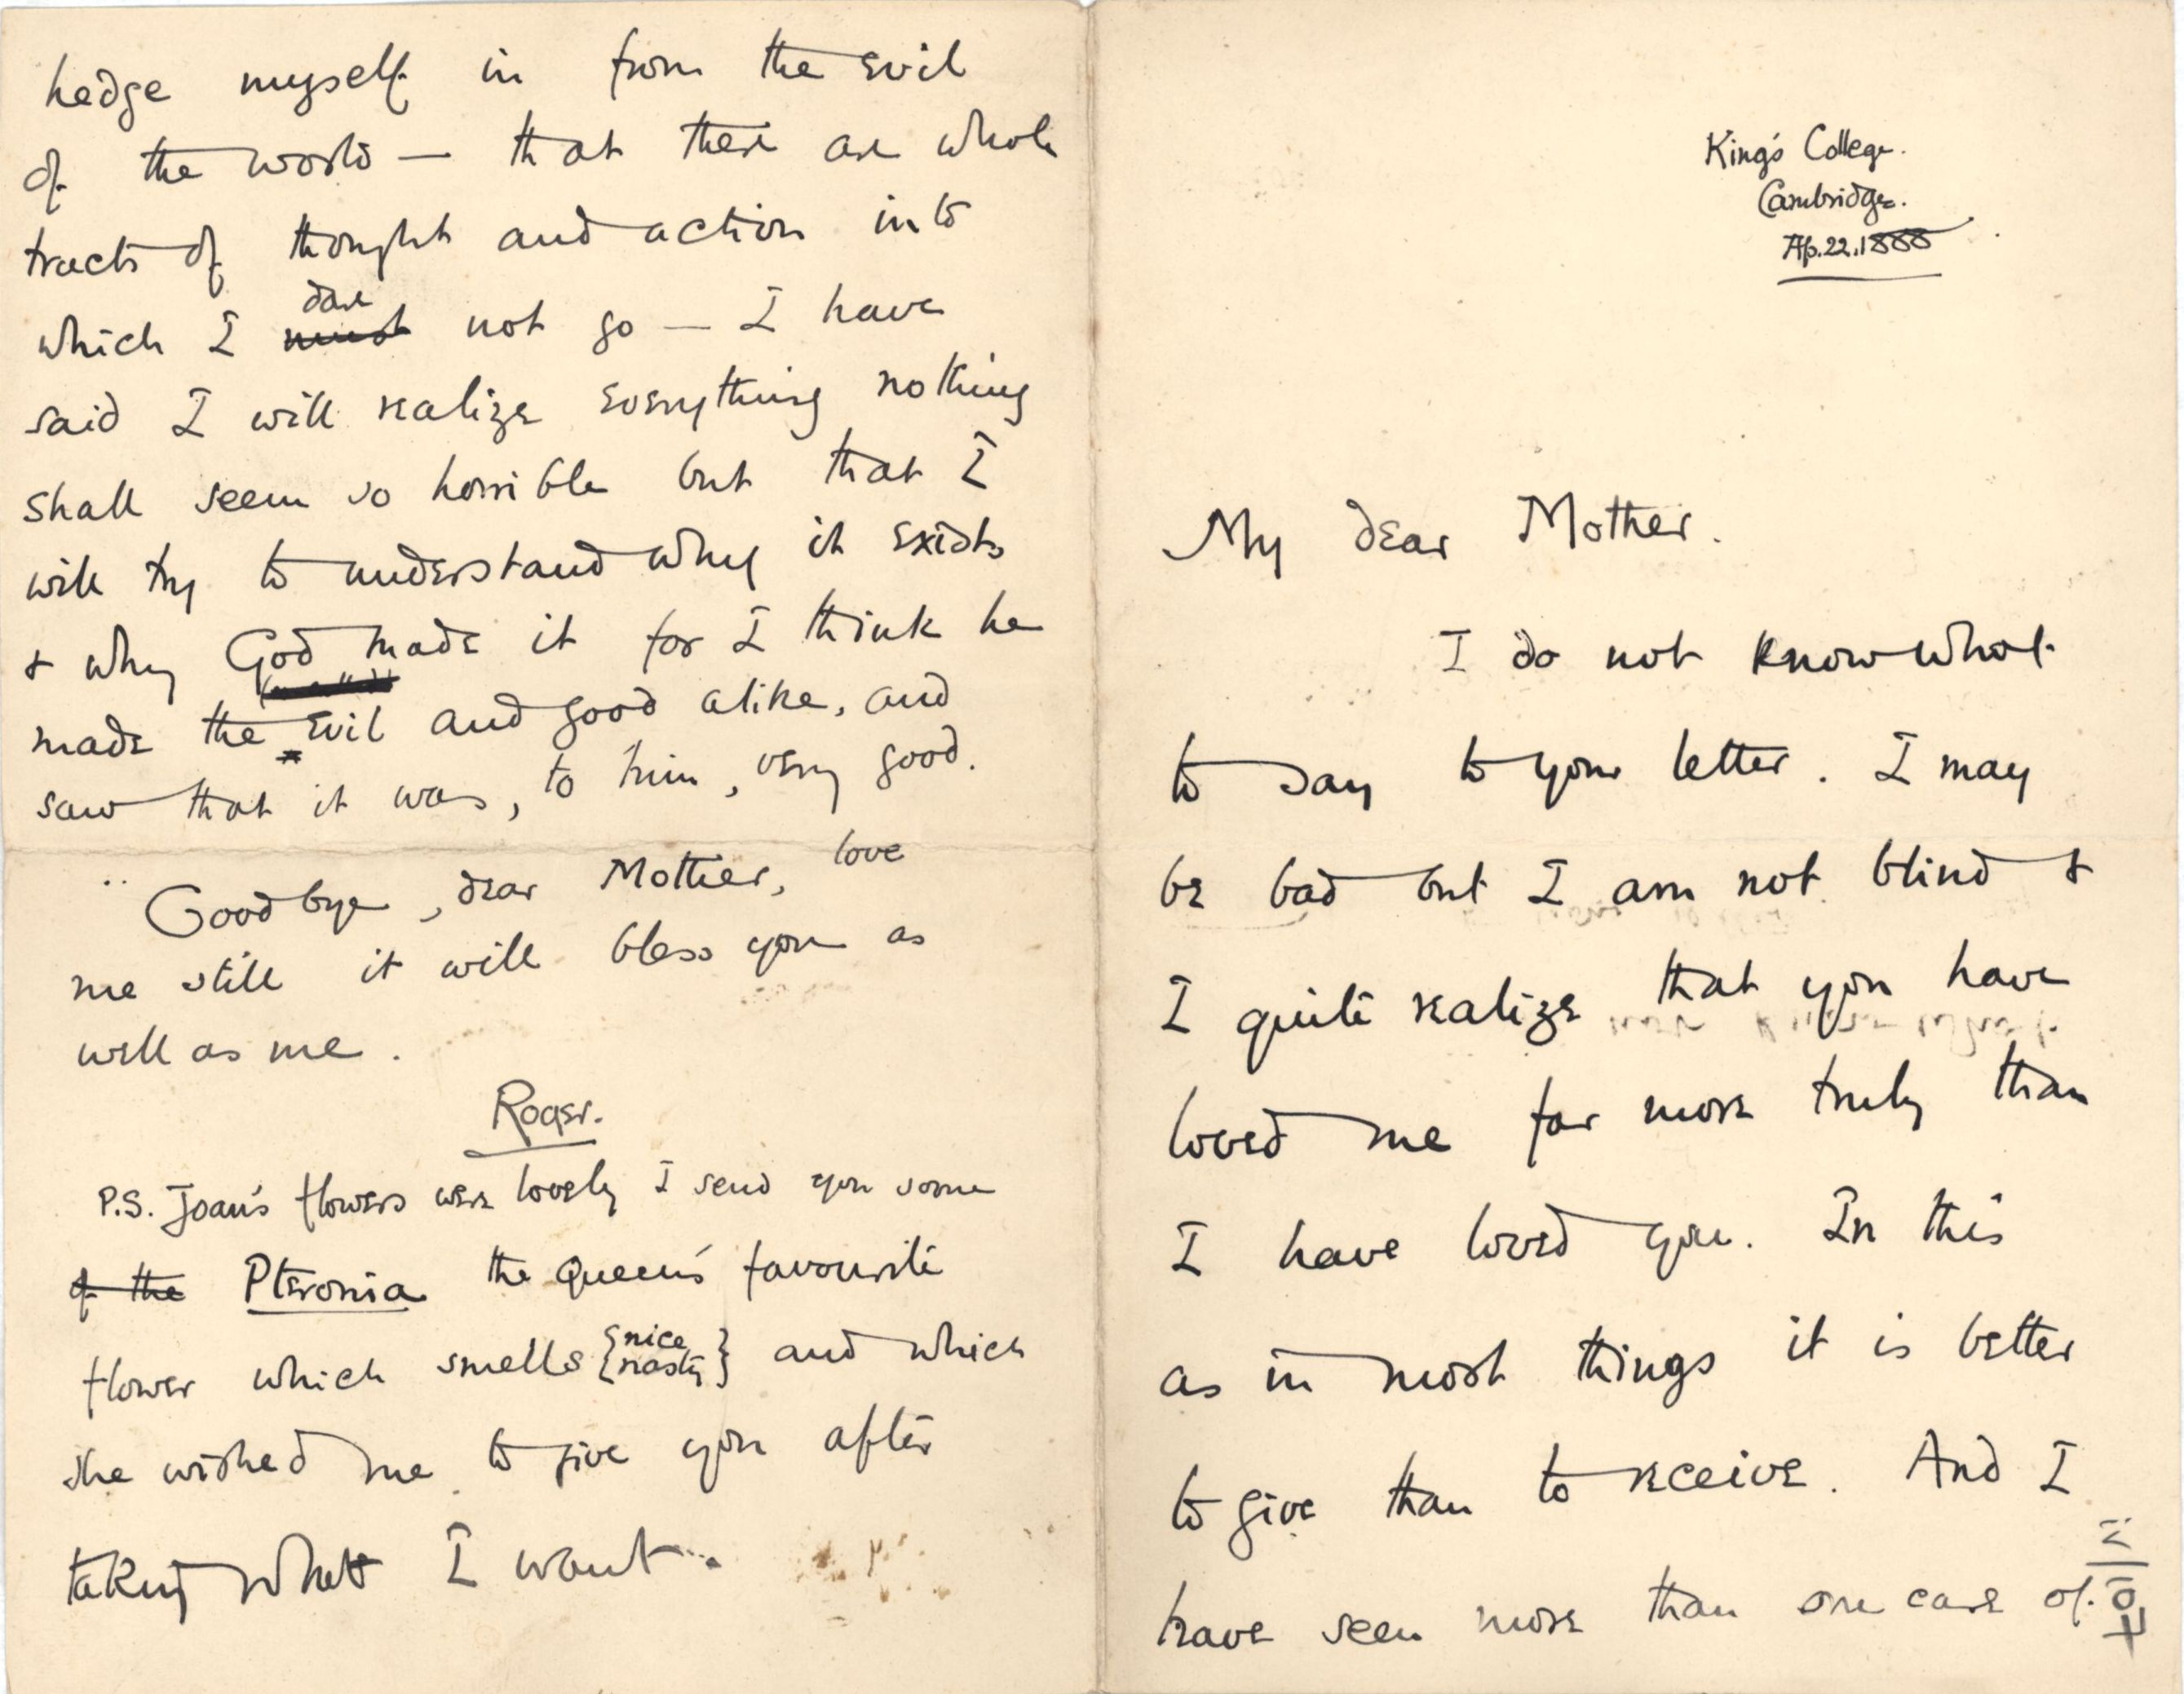 Letter from Roger Fry to his mother, 22 April 1888, expressing religious doubts. [REF/3/57/25]